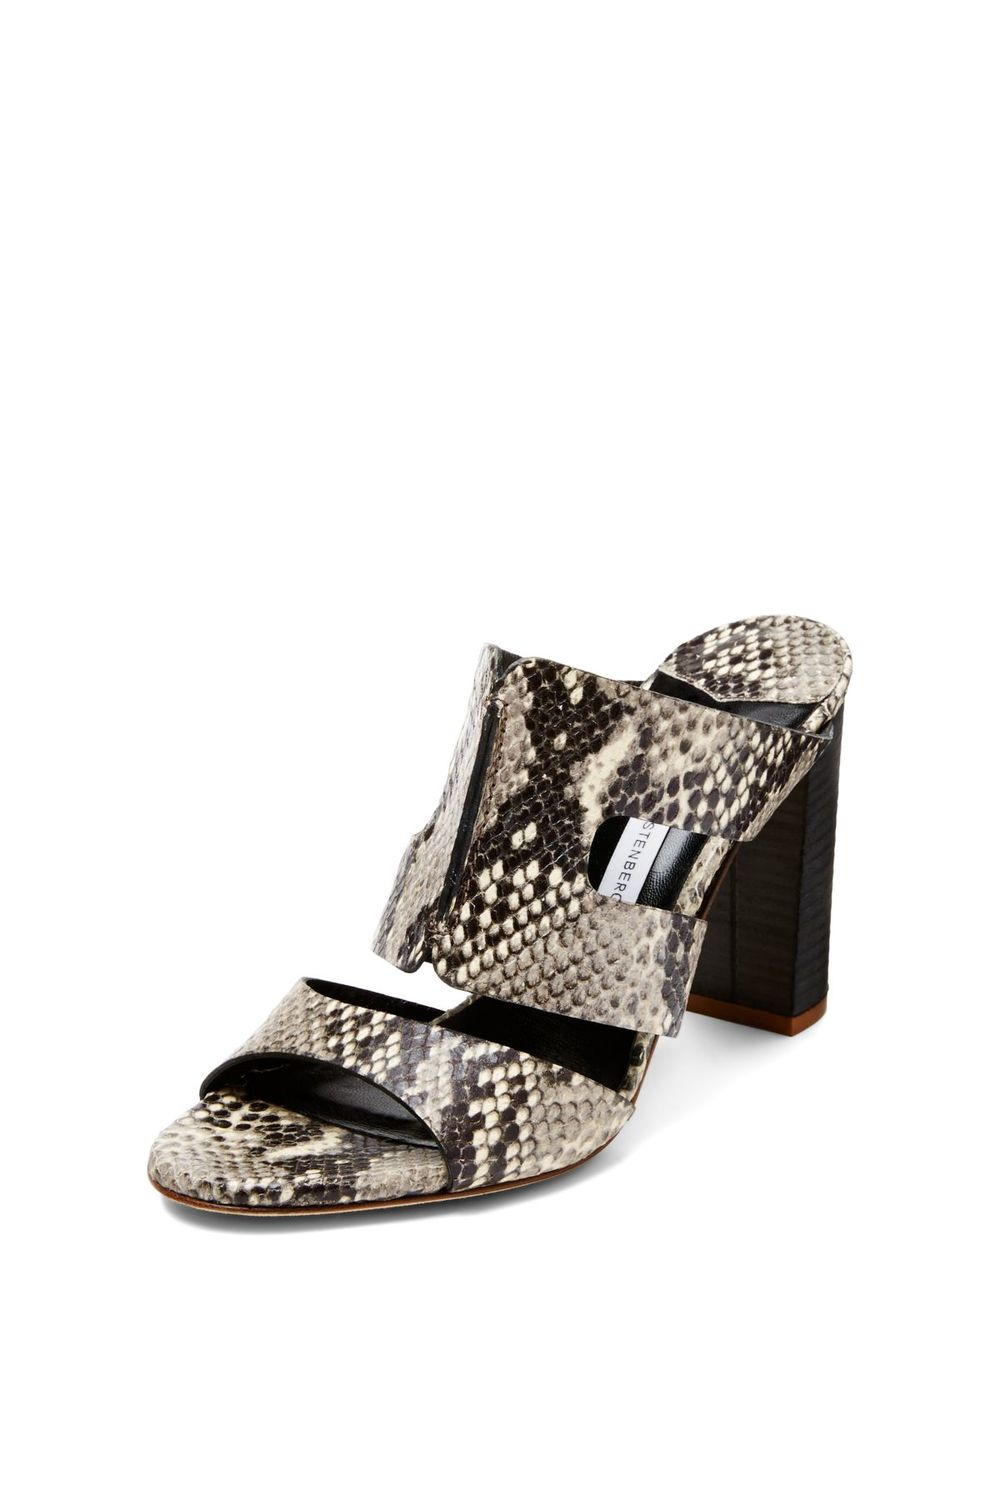 DVF Cosenza Snake Leather Mule. DVF. Was: $348 Now: $174.